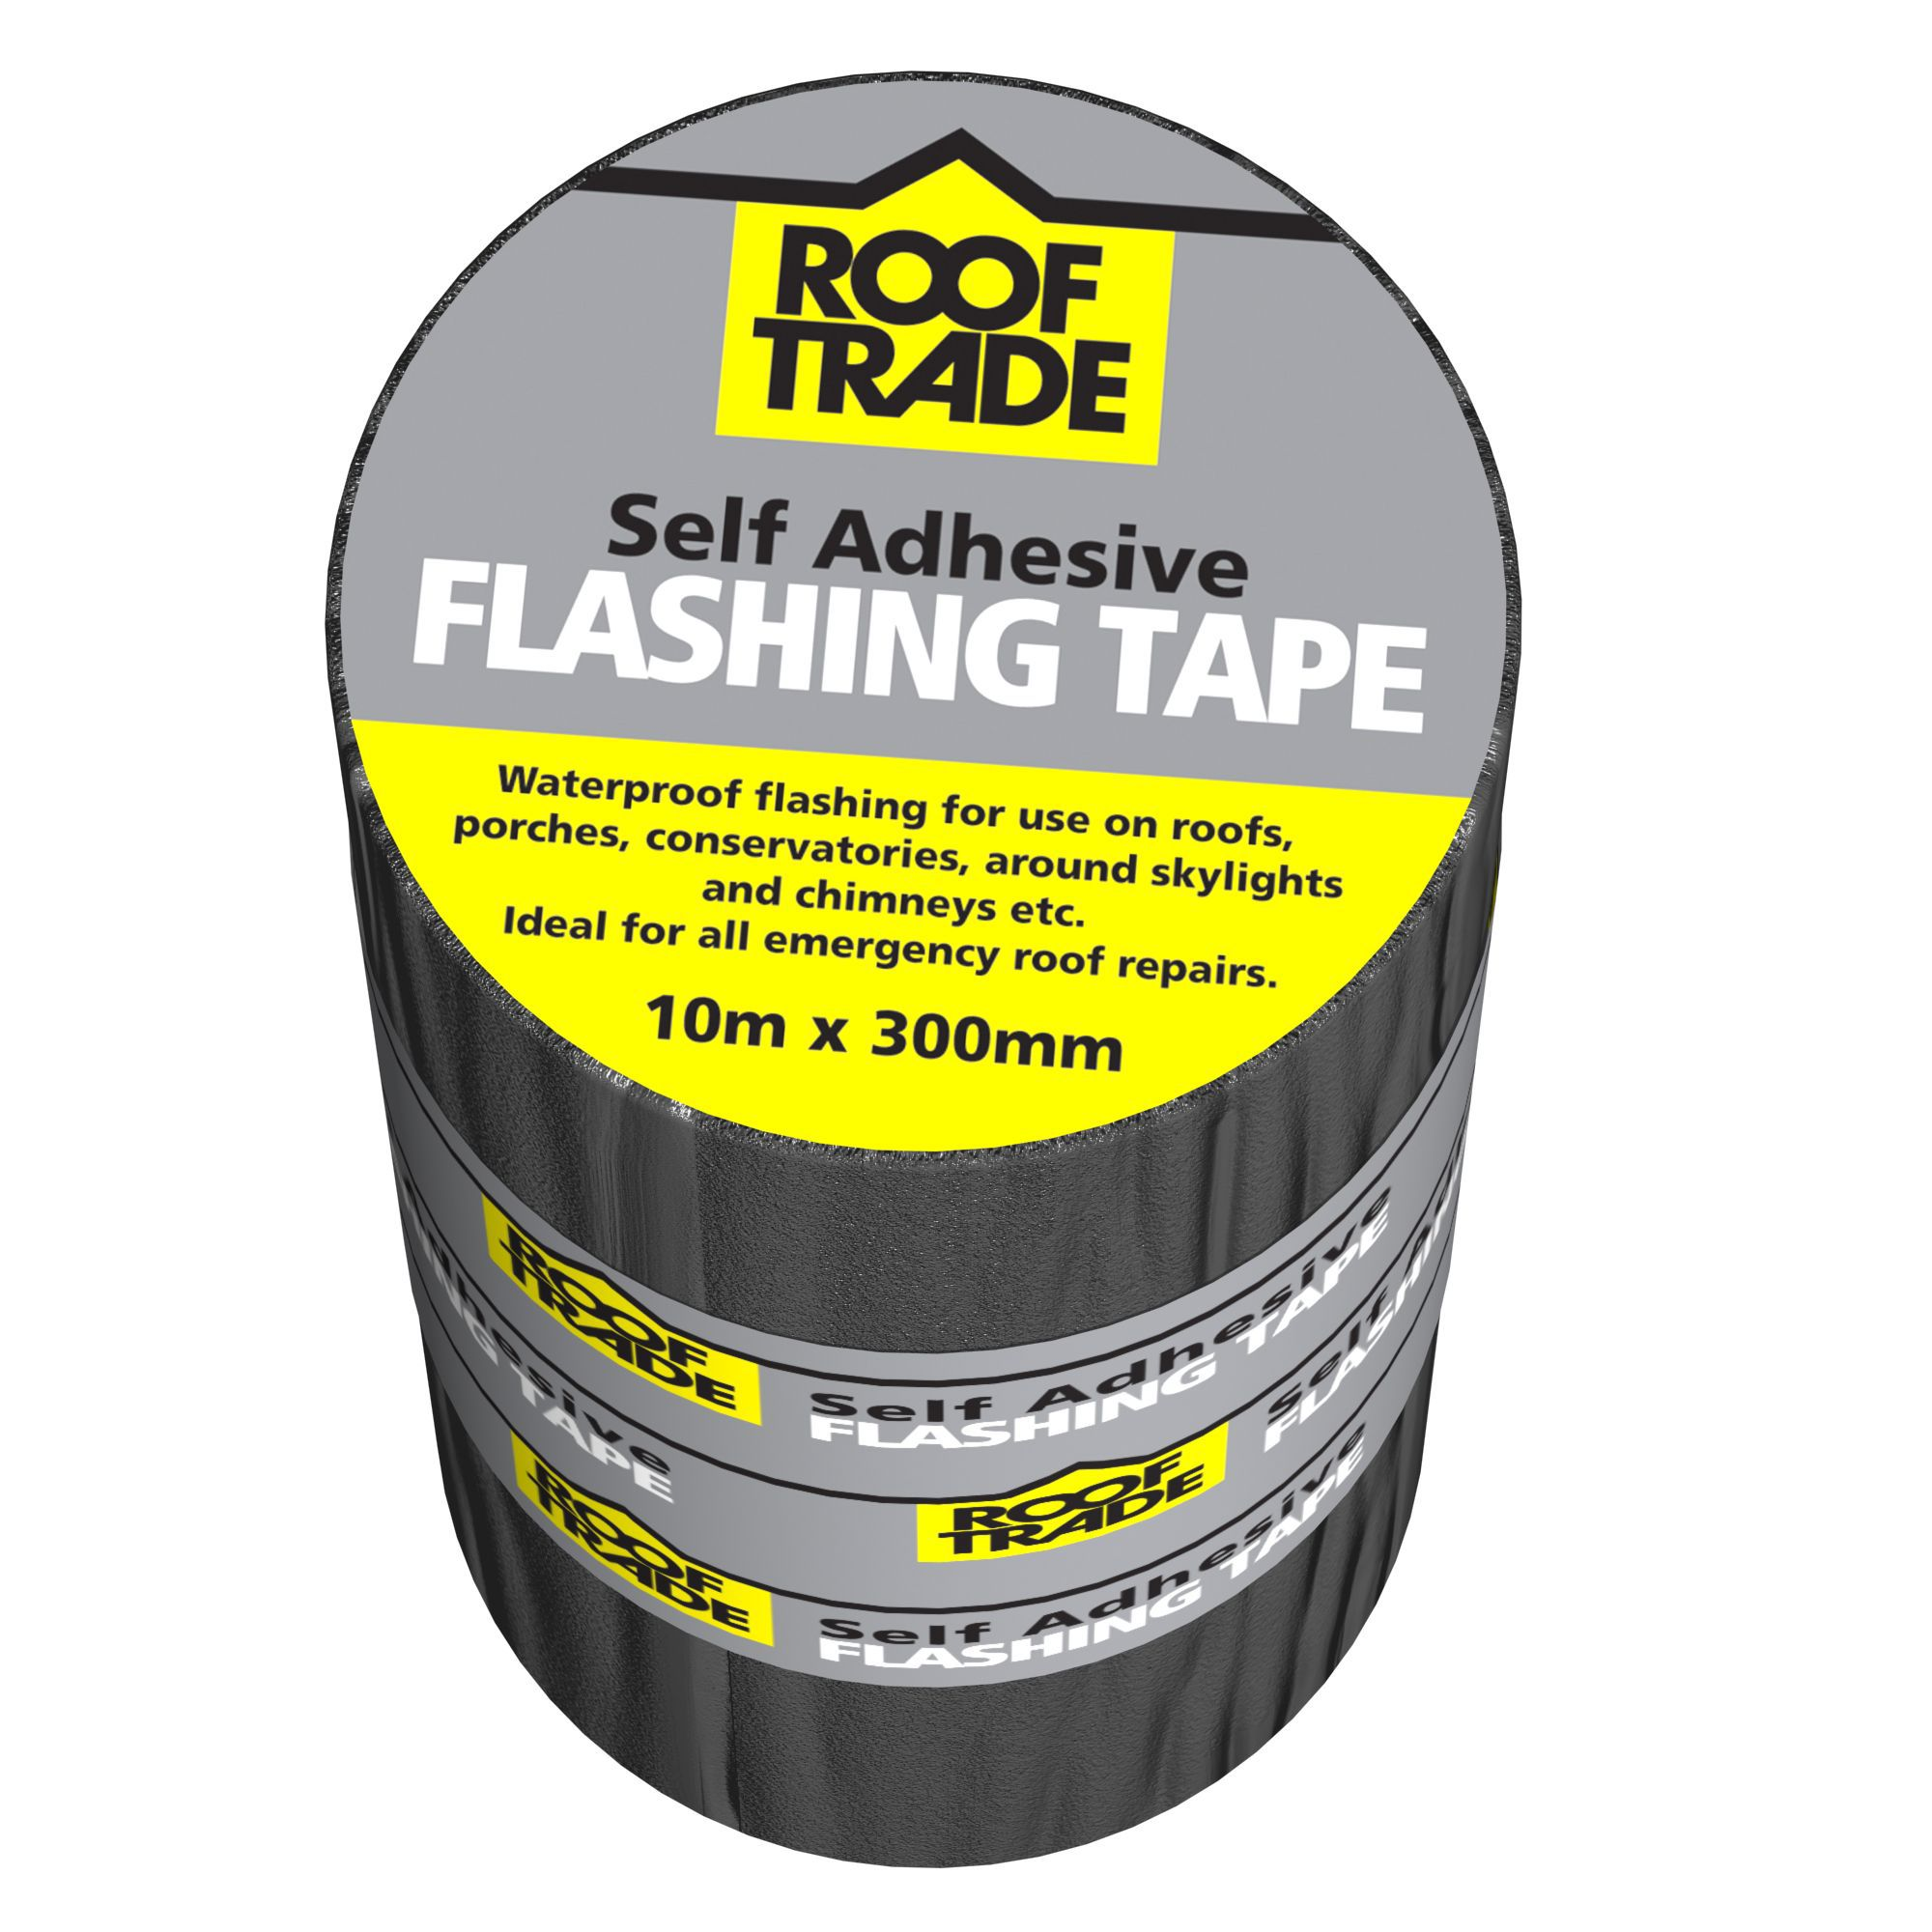 Evo-stik Rooftrade Grey Flashing Tape (l)10m (w)300mm